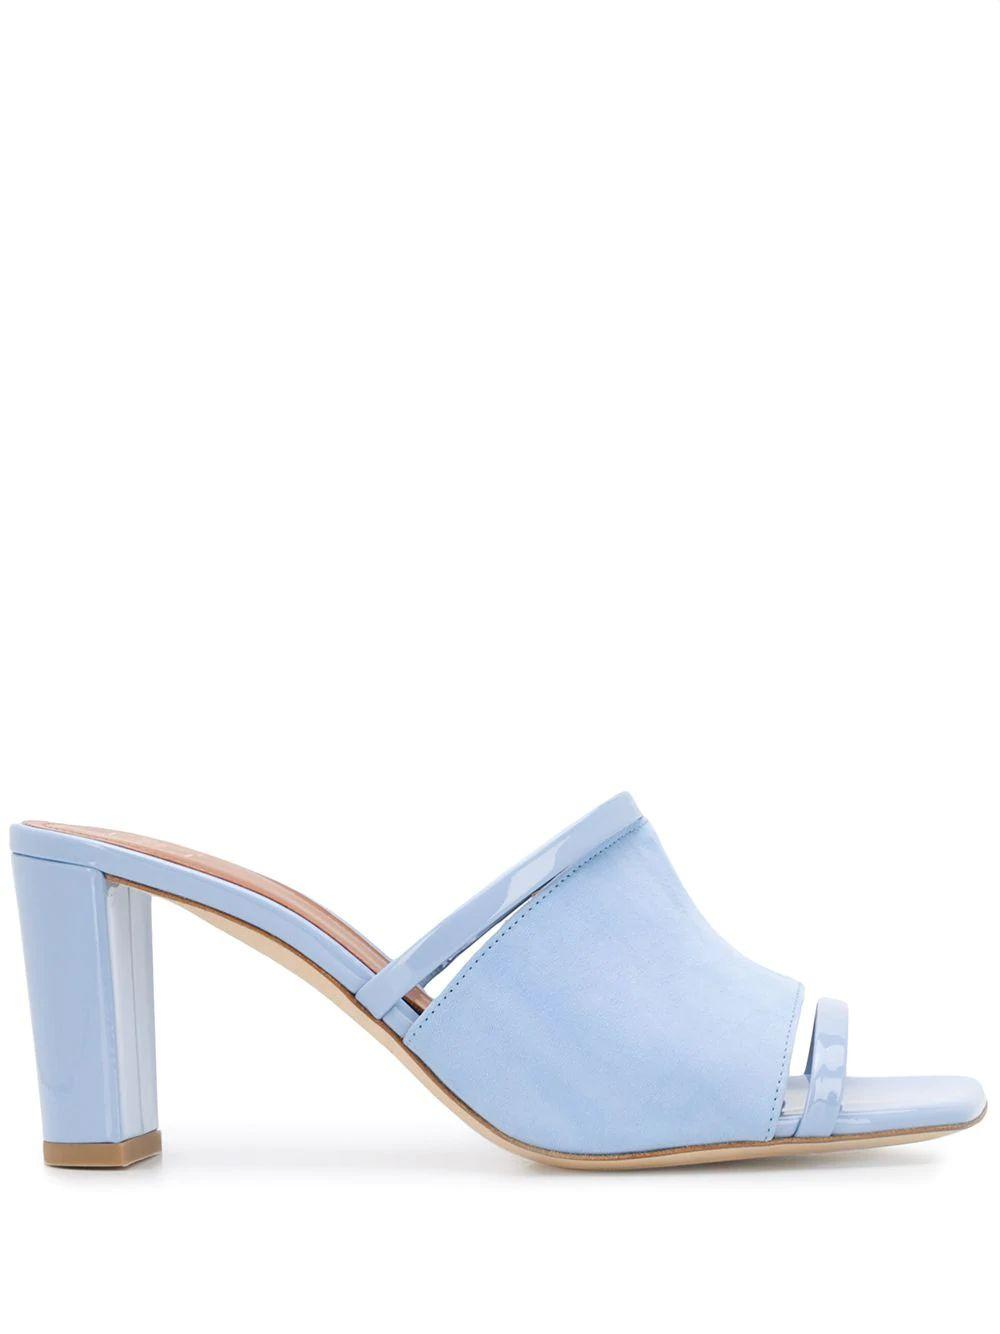 Suede Patent 70mm Strappy Sandal